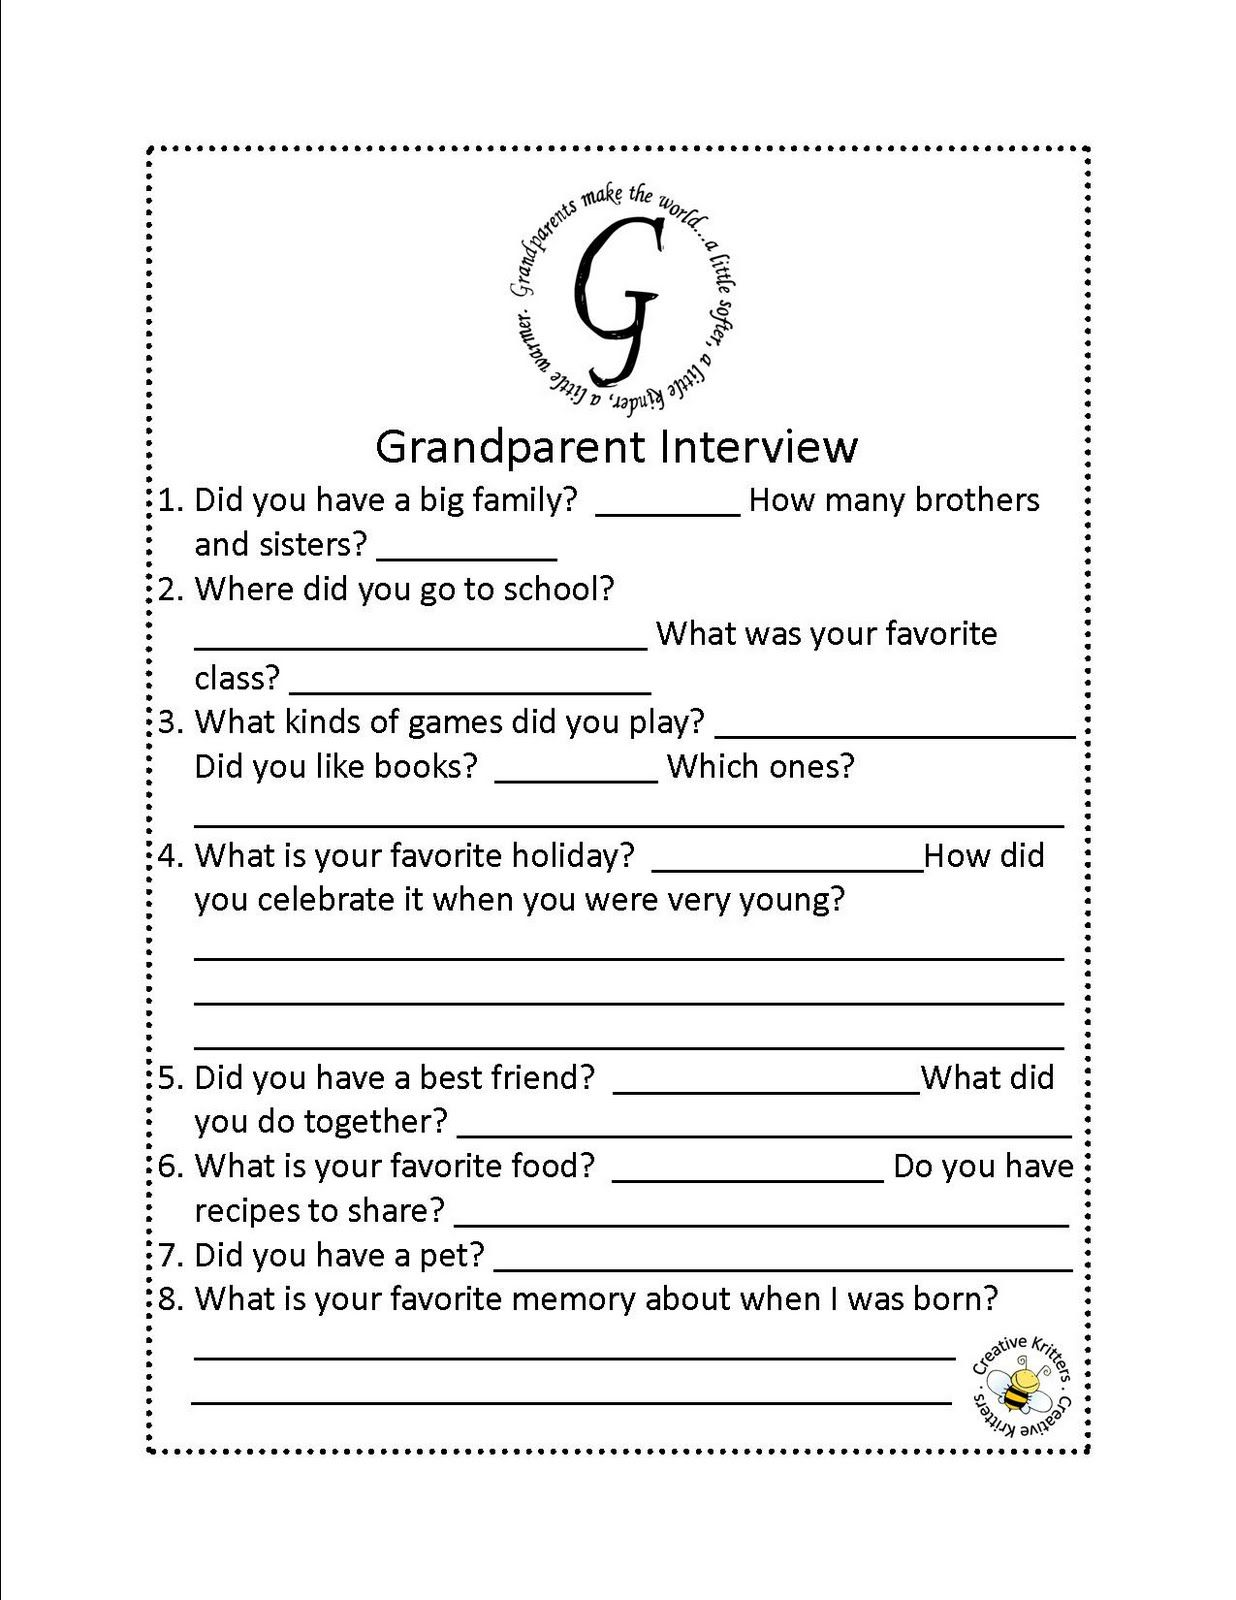 Interview grandparents essay